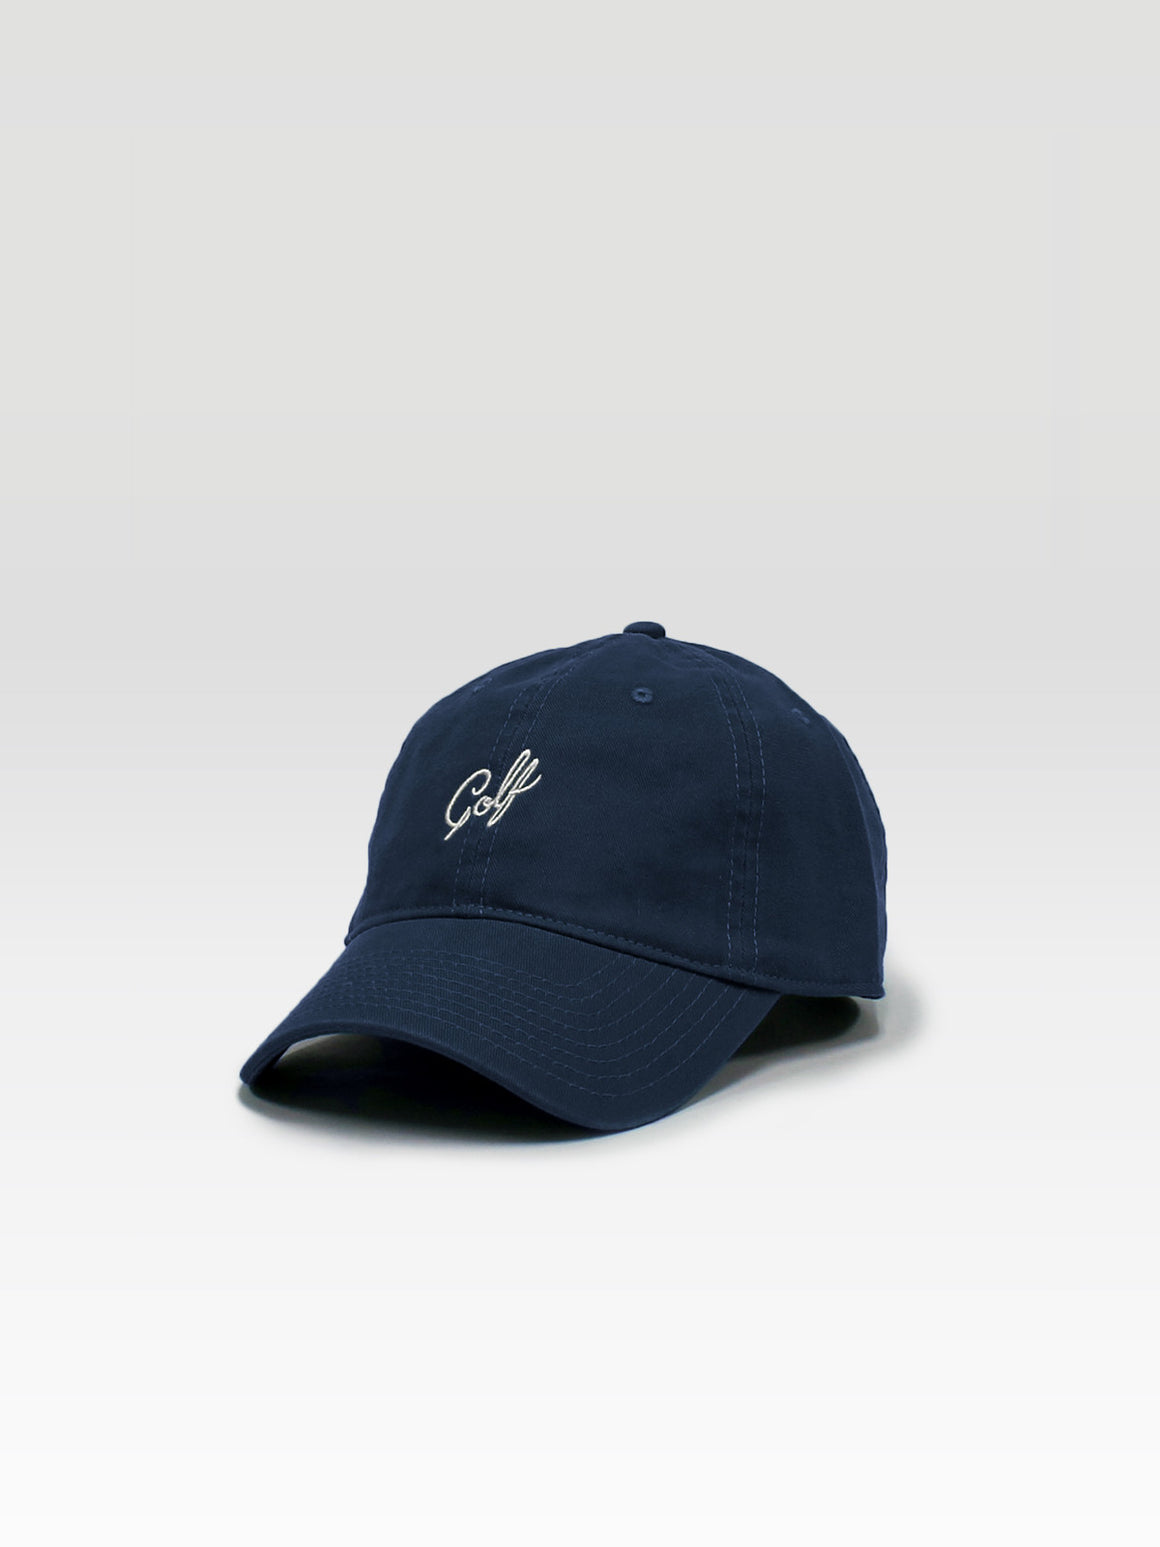 Golf Dad Hat - Navy (White)